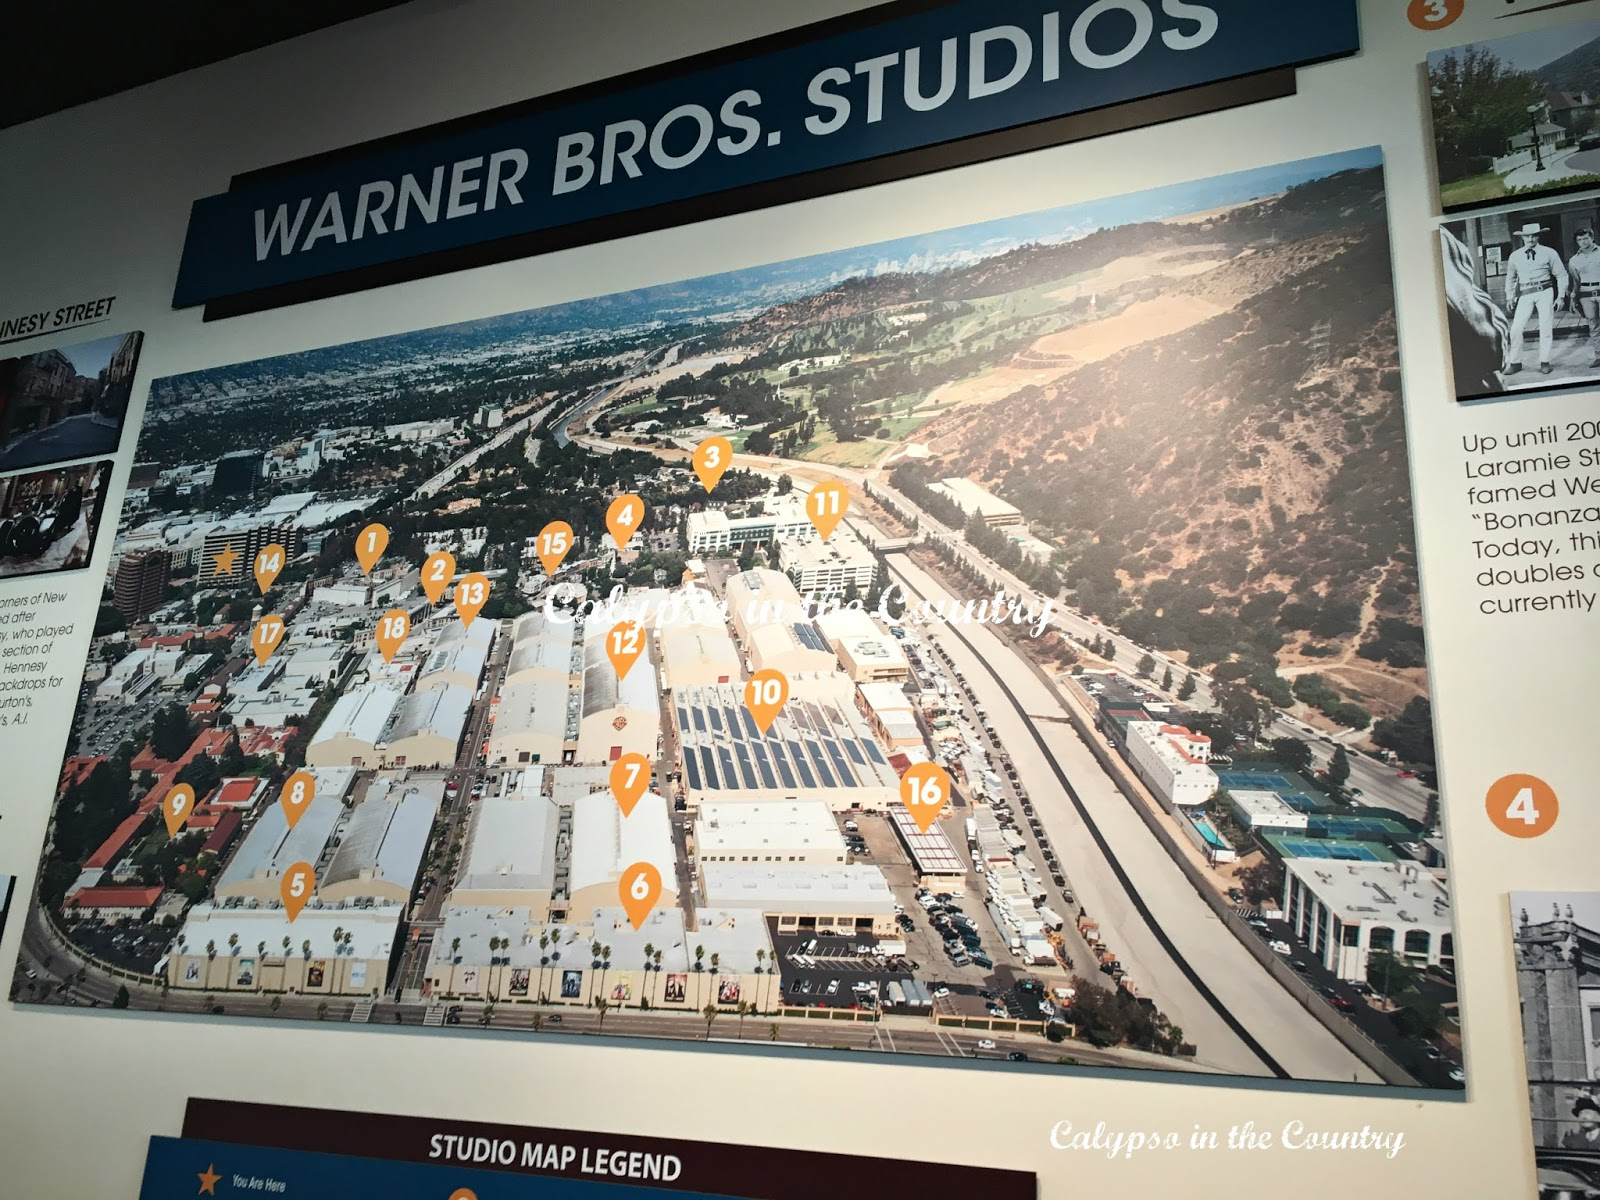 WB Studios - a must see in LA